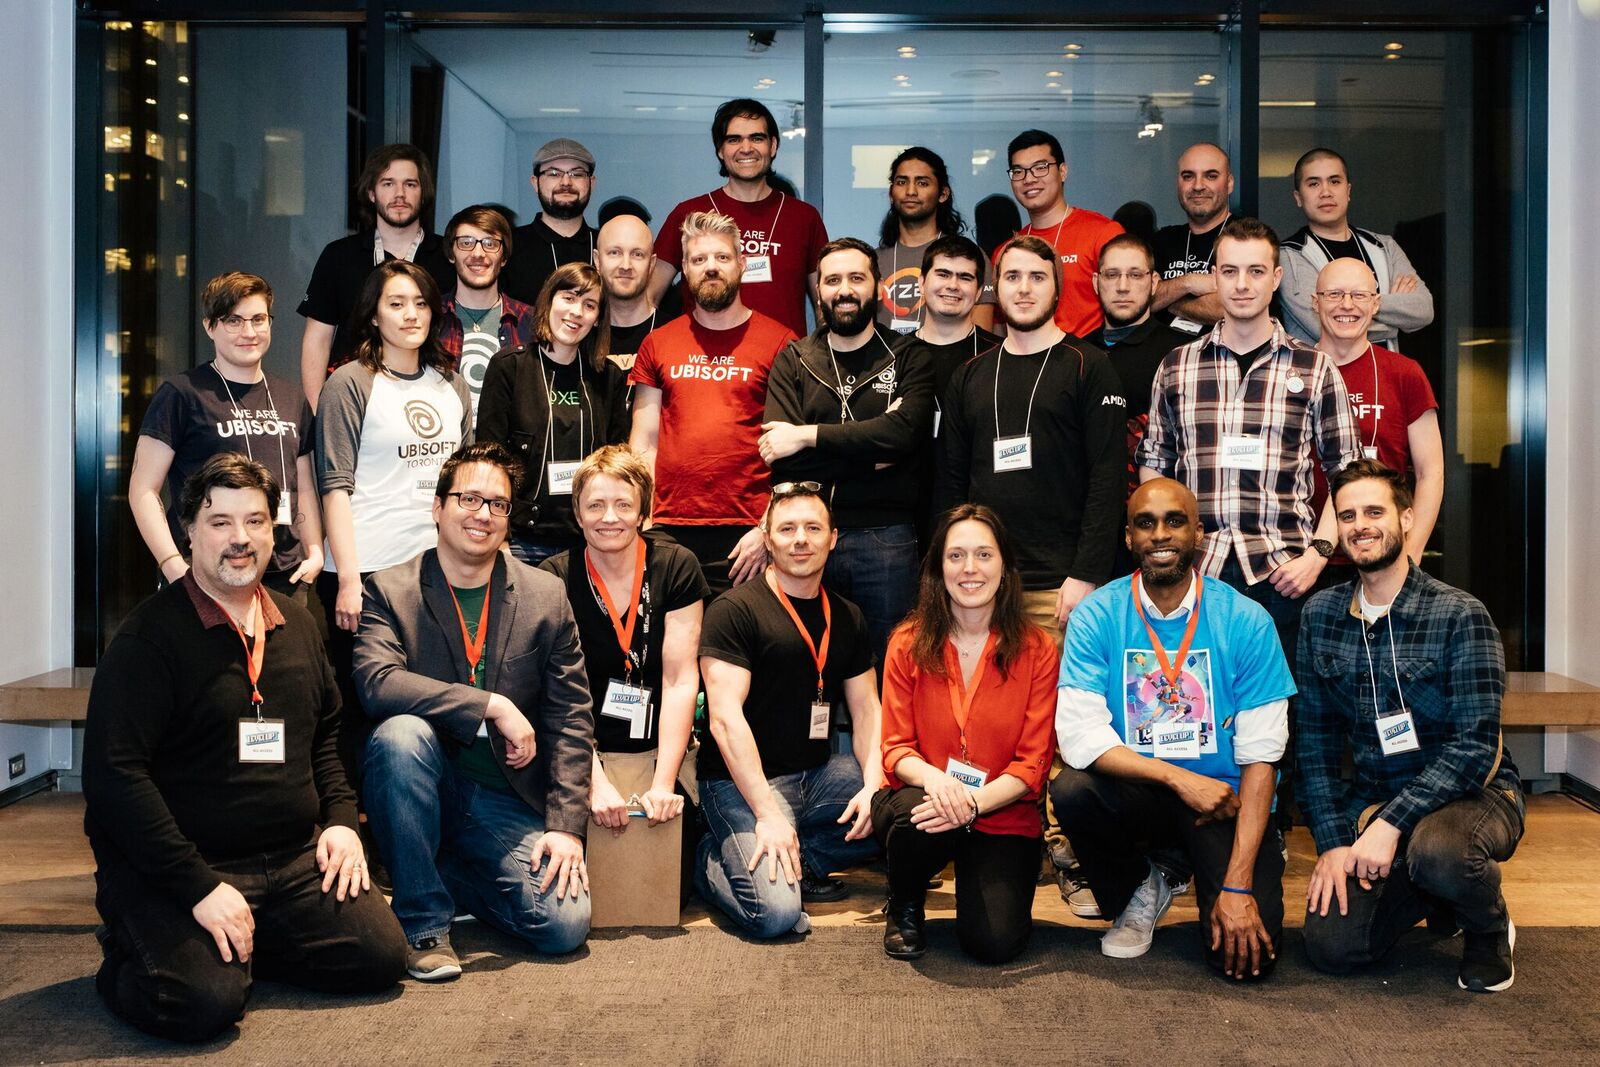 Group photo of about 25 people